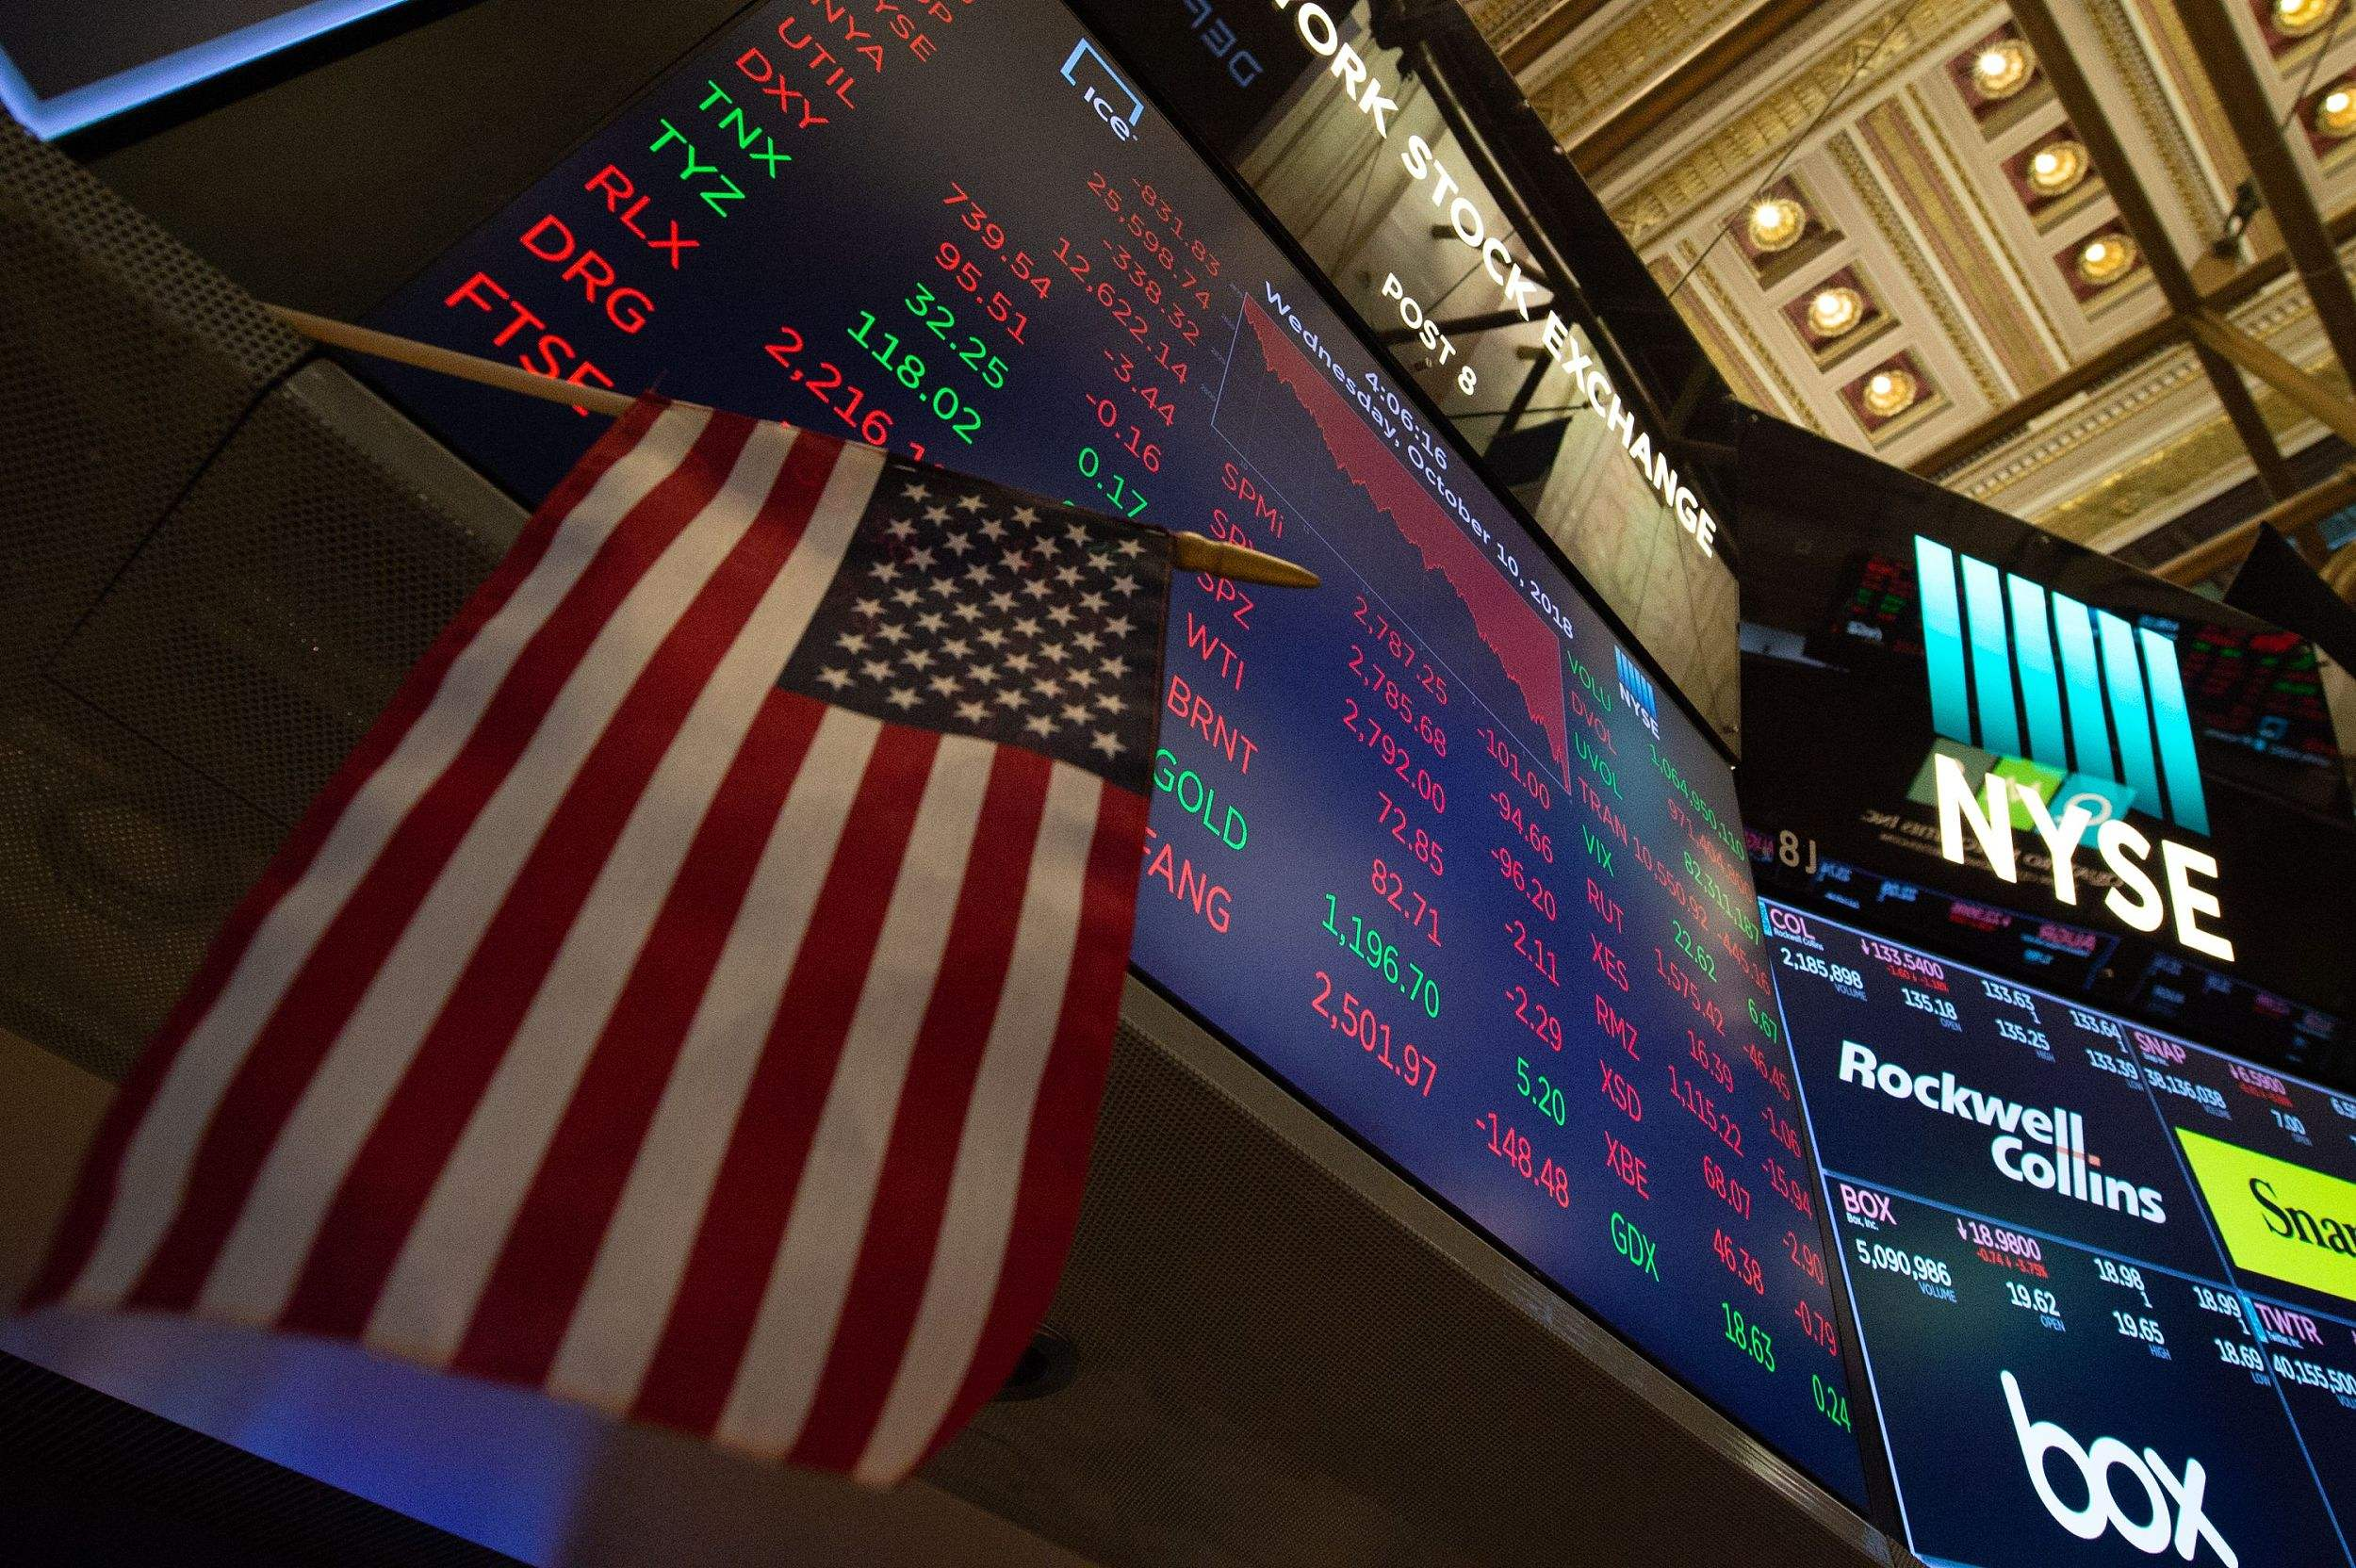 World's largest hedge fund warns US economy faces looming deceleration